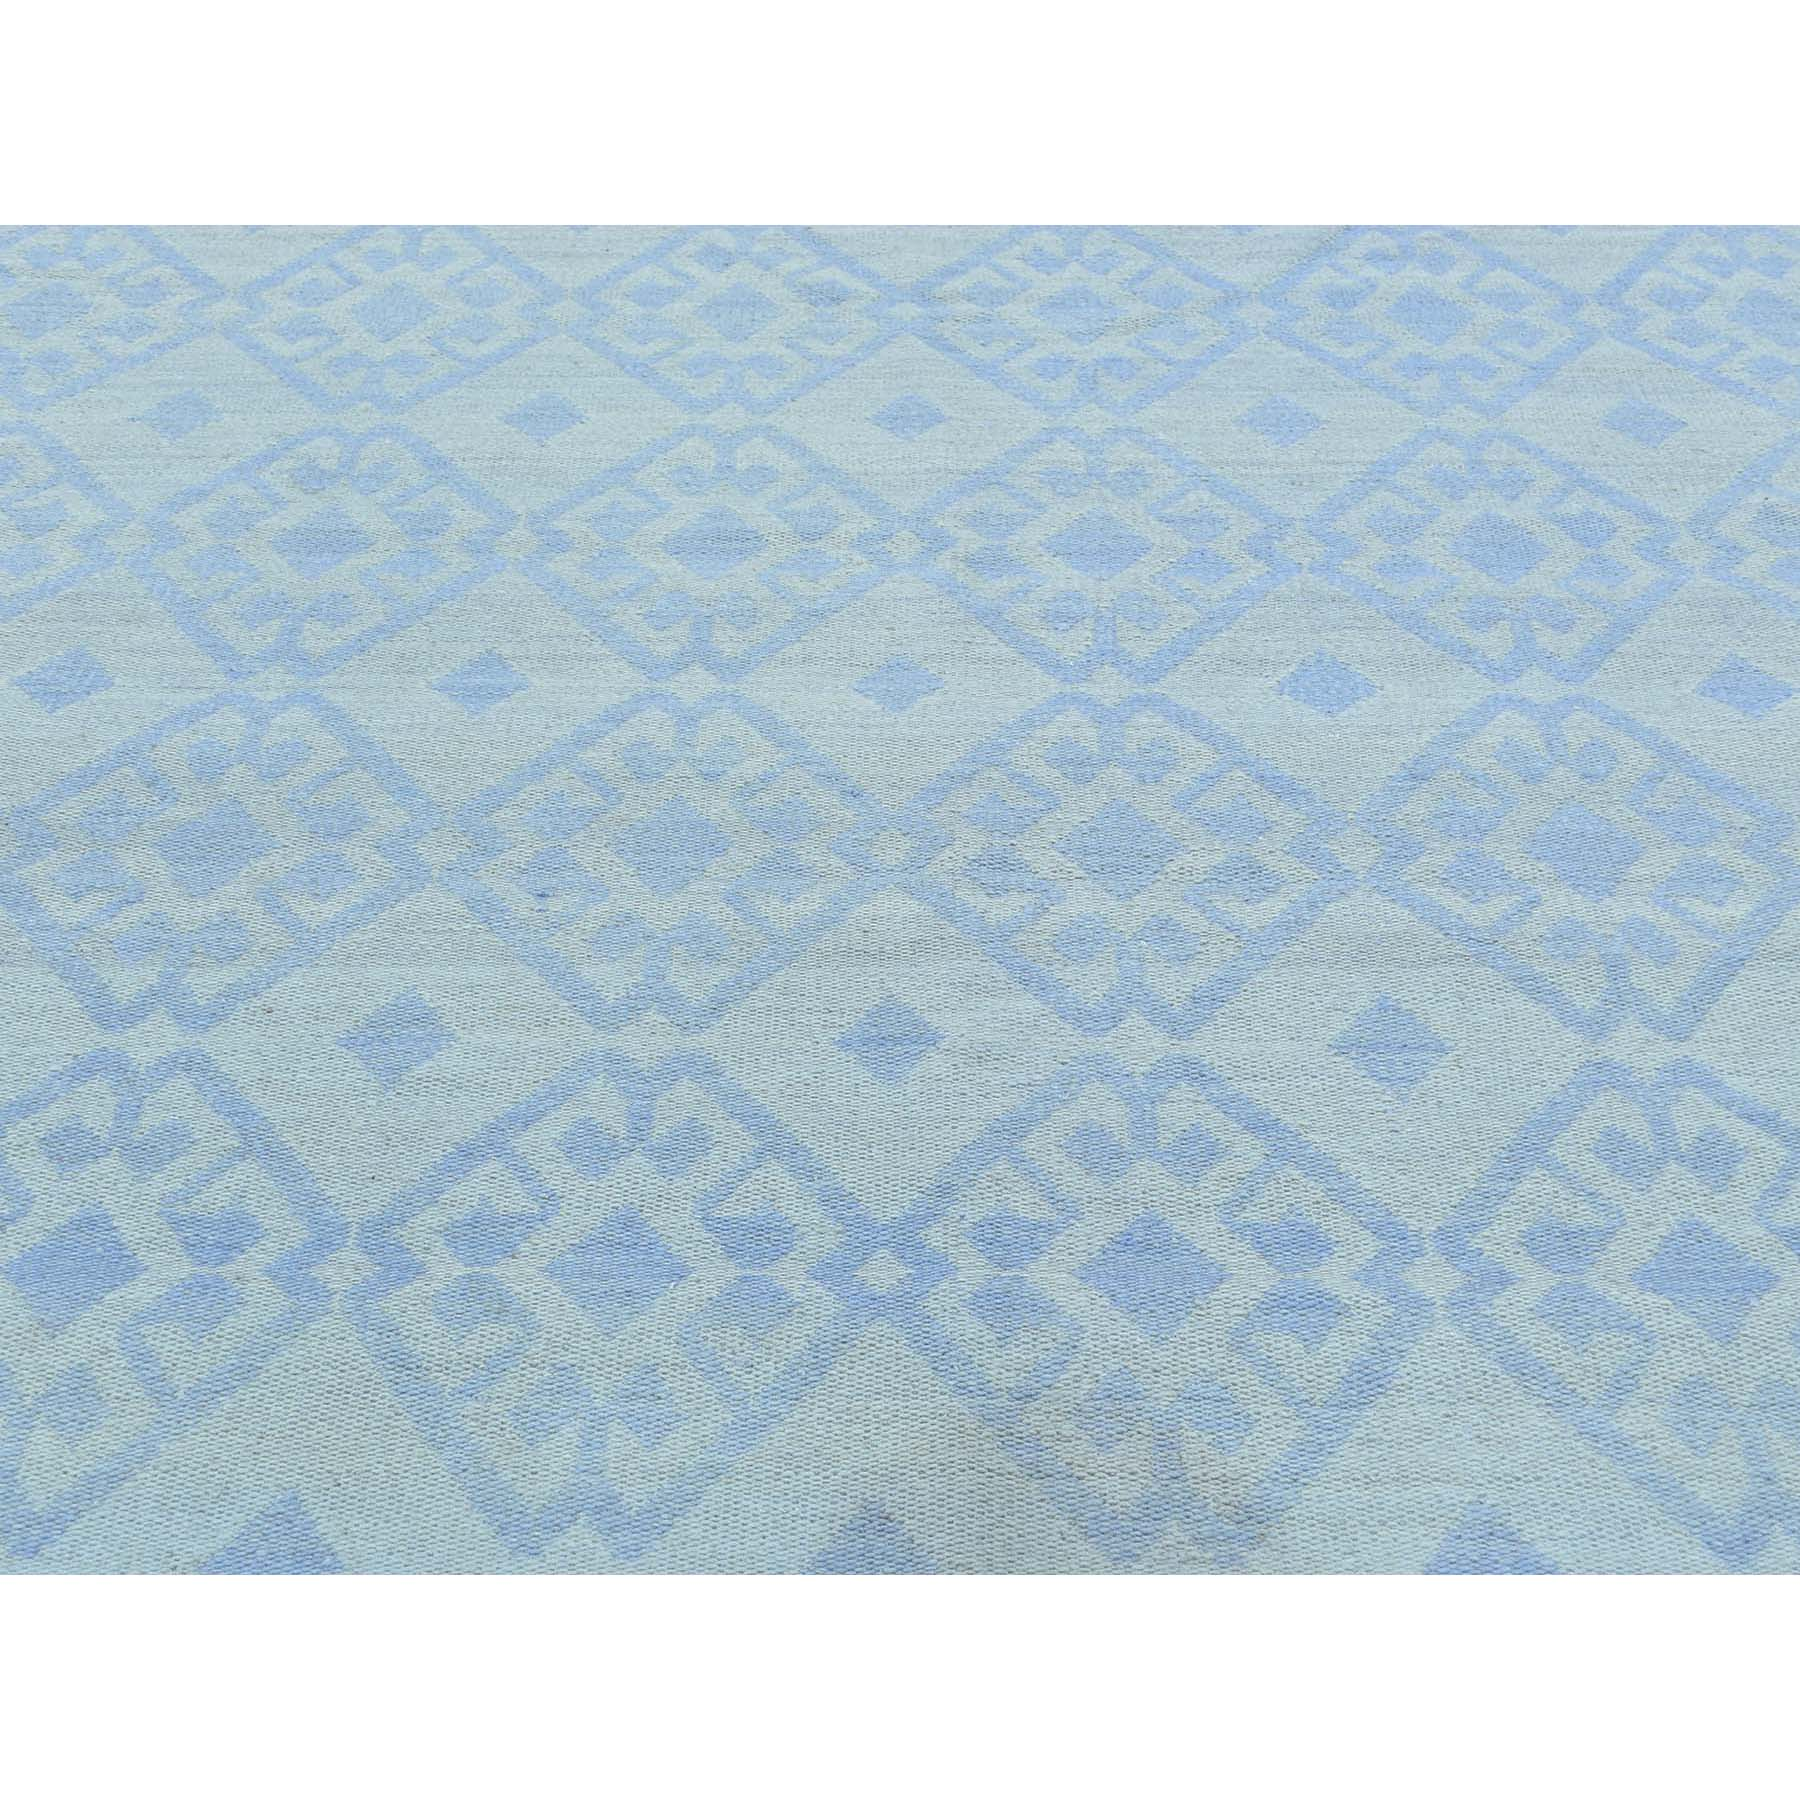 7-10 x7-10  Hand-Woven Flat Weave Reversible Durie Kilim Square Rug